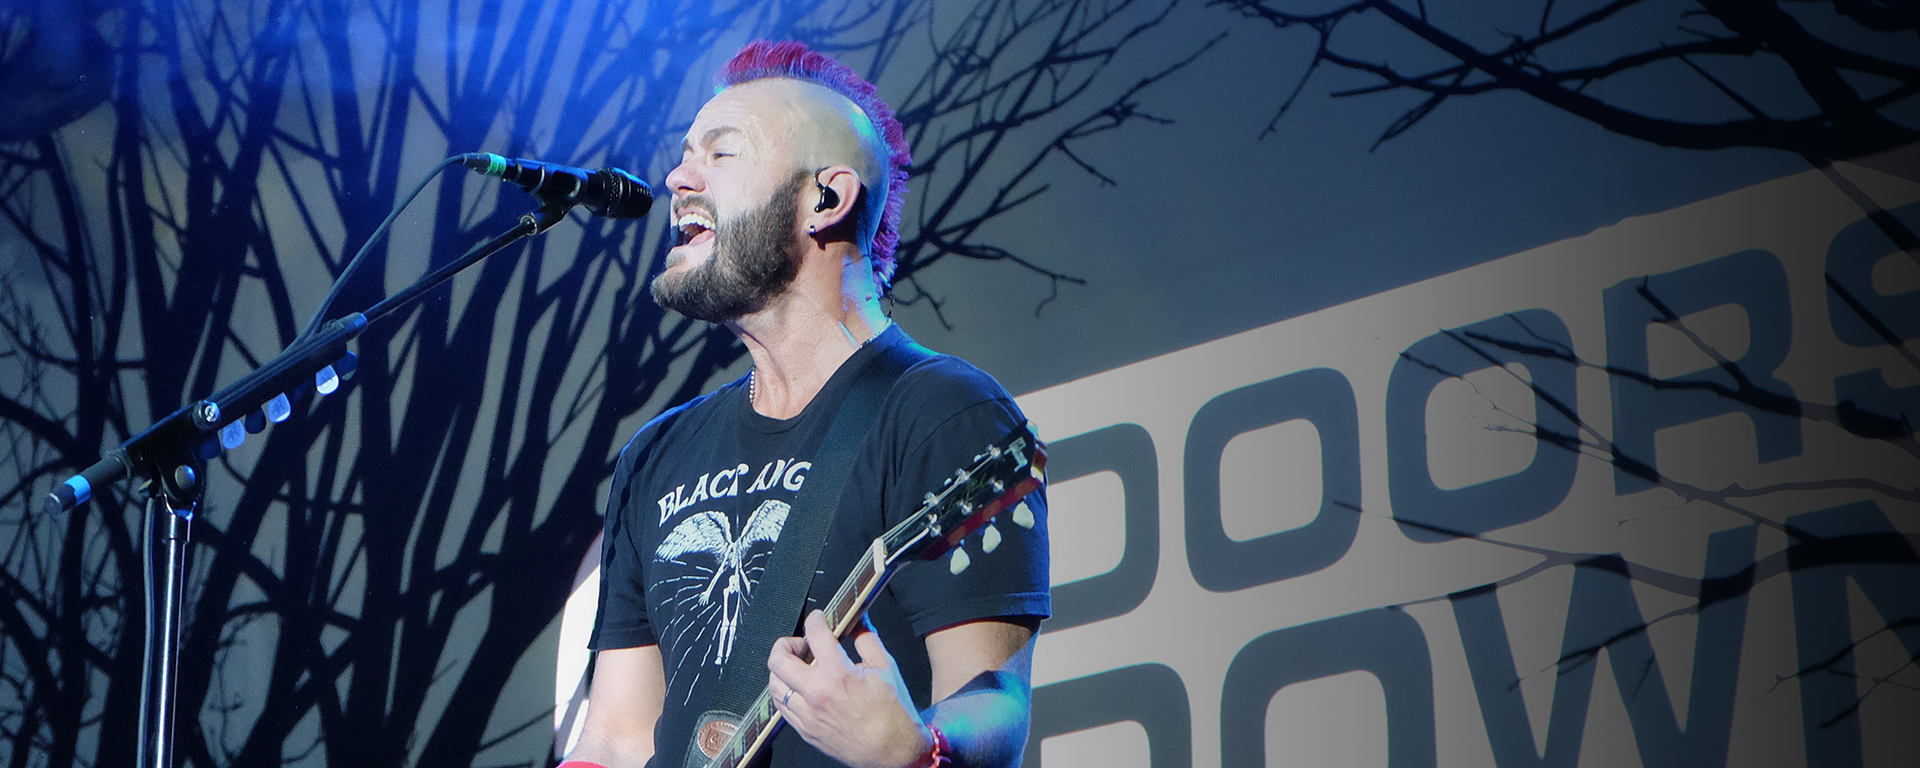 Chet Roberts of 3 Doors Down using the MTP 550 DM as live stage mic